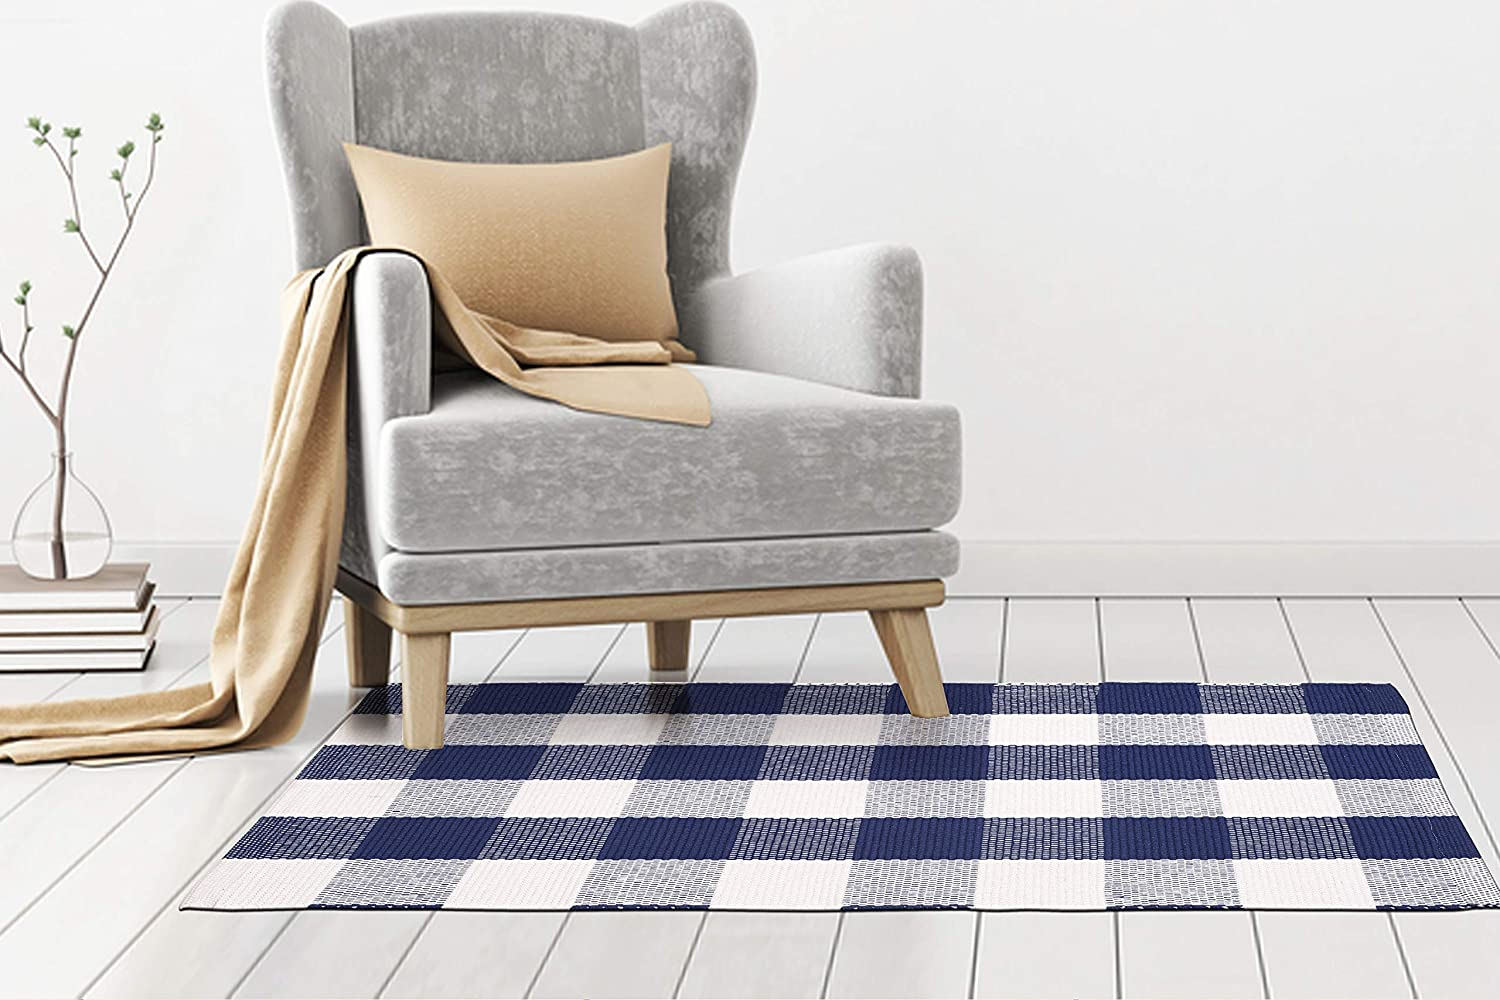 Kitchen Rugs Living Room Rug Entry Way Rugs Set Of 1 Farmhouse Rug Aqua White Cotton Rag Rug In Buffalo Checkered Design 21x34 Inch Hand Woven 100 Cotton Rug Kids Room Rug Home